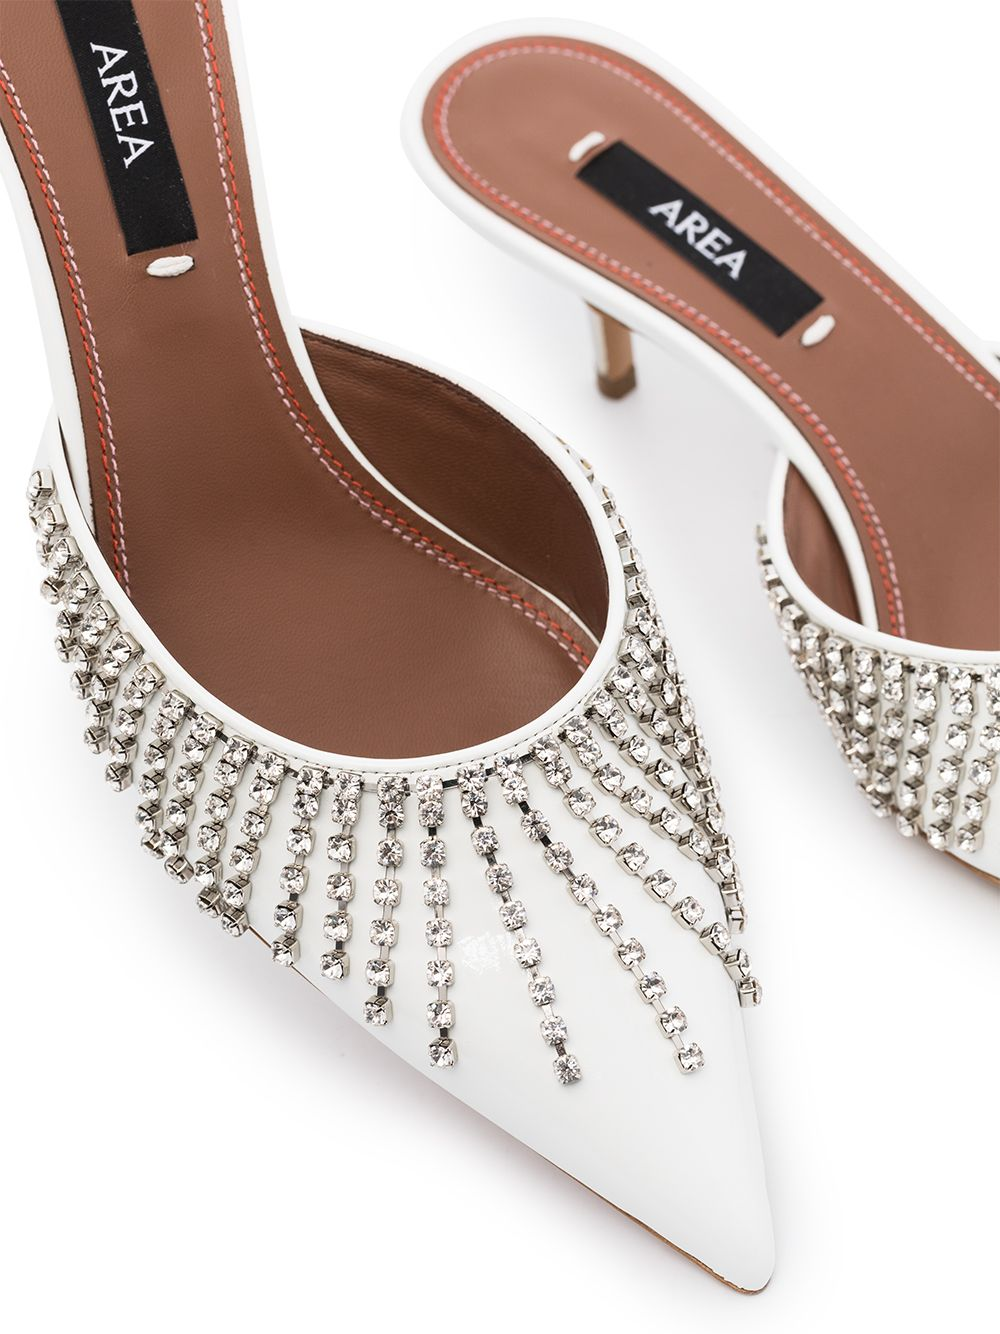 50mm Fringed Crystal-Embellished Mules Top